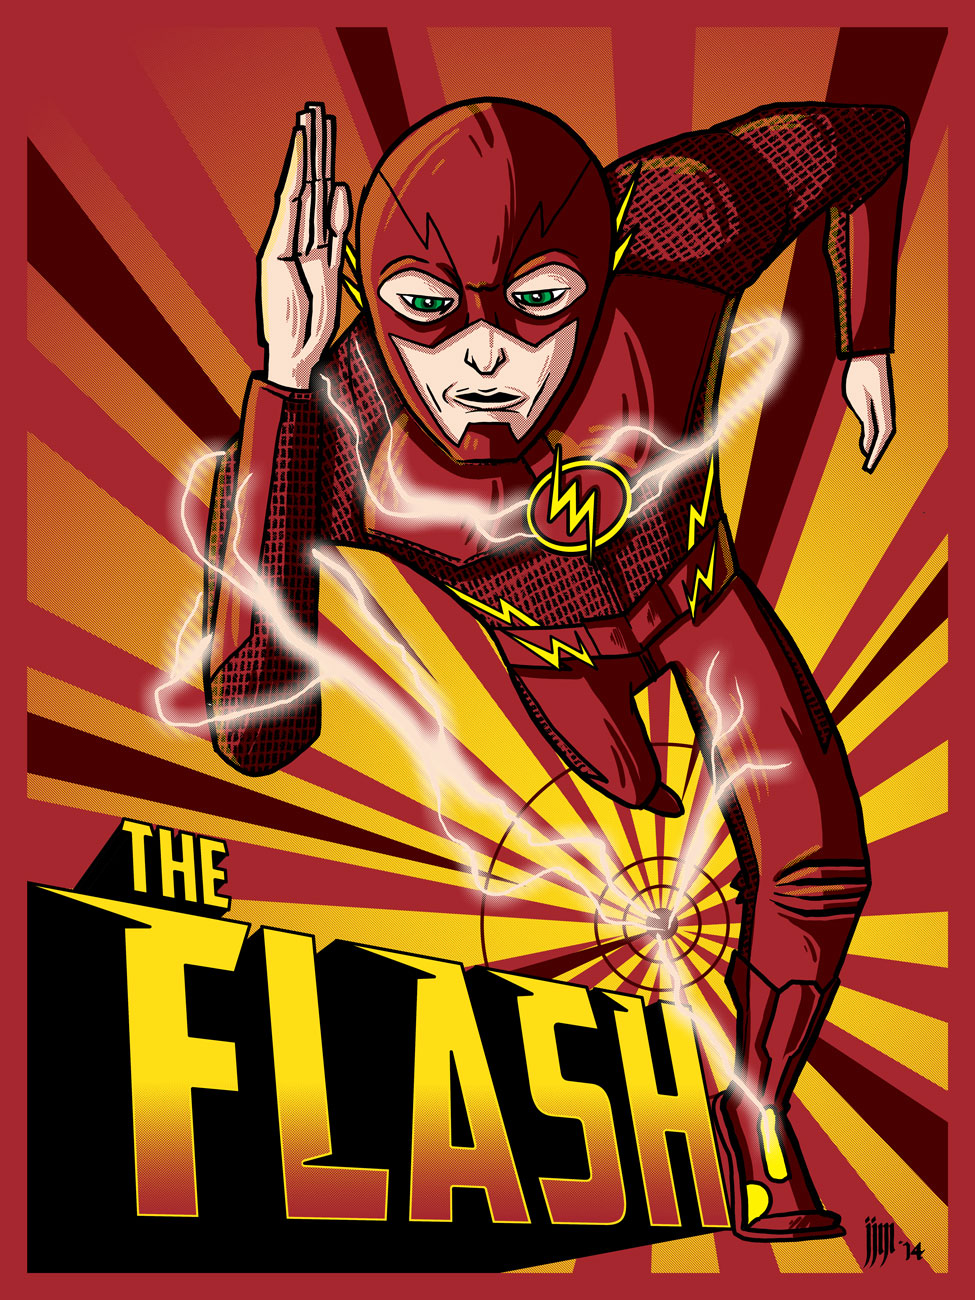 The_Flash.jpg